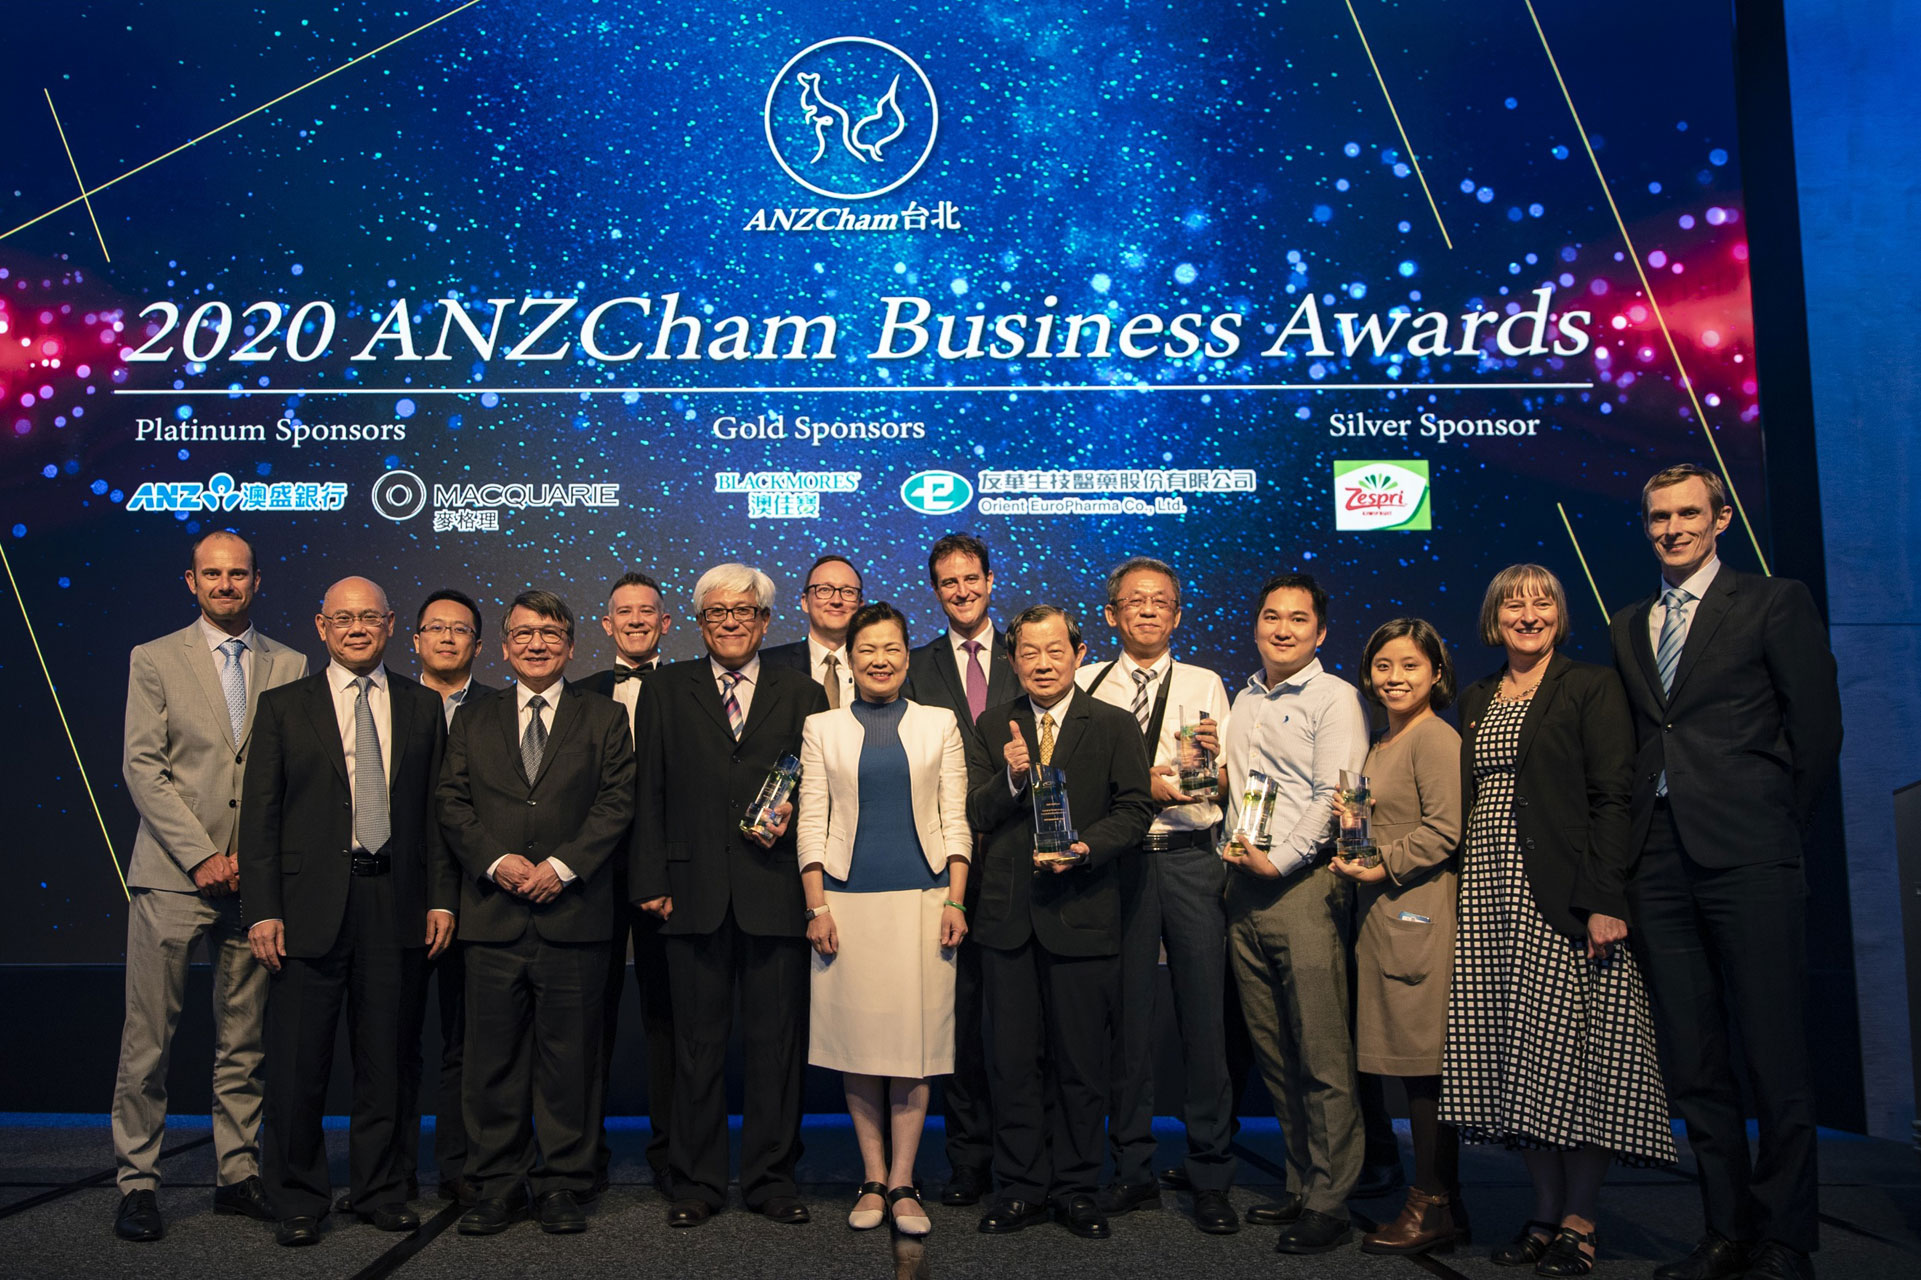 2020 ANZCham Business Awards Photo-2